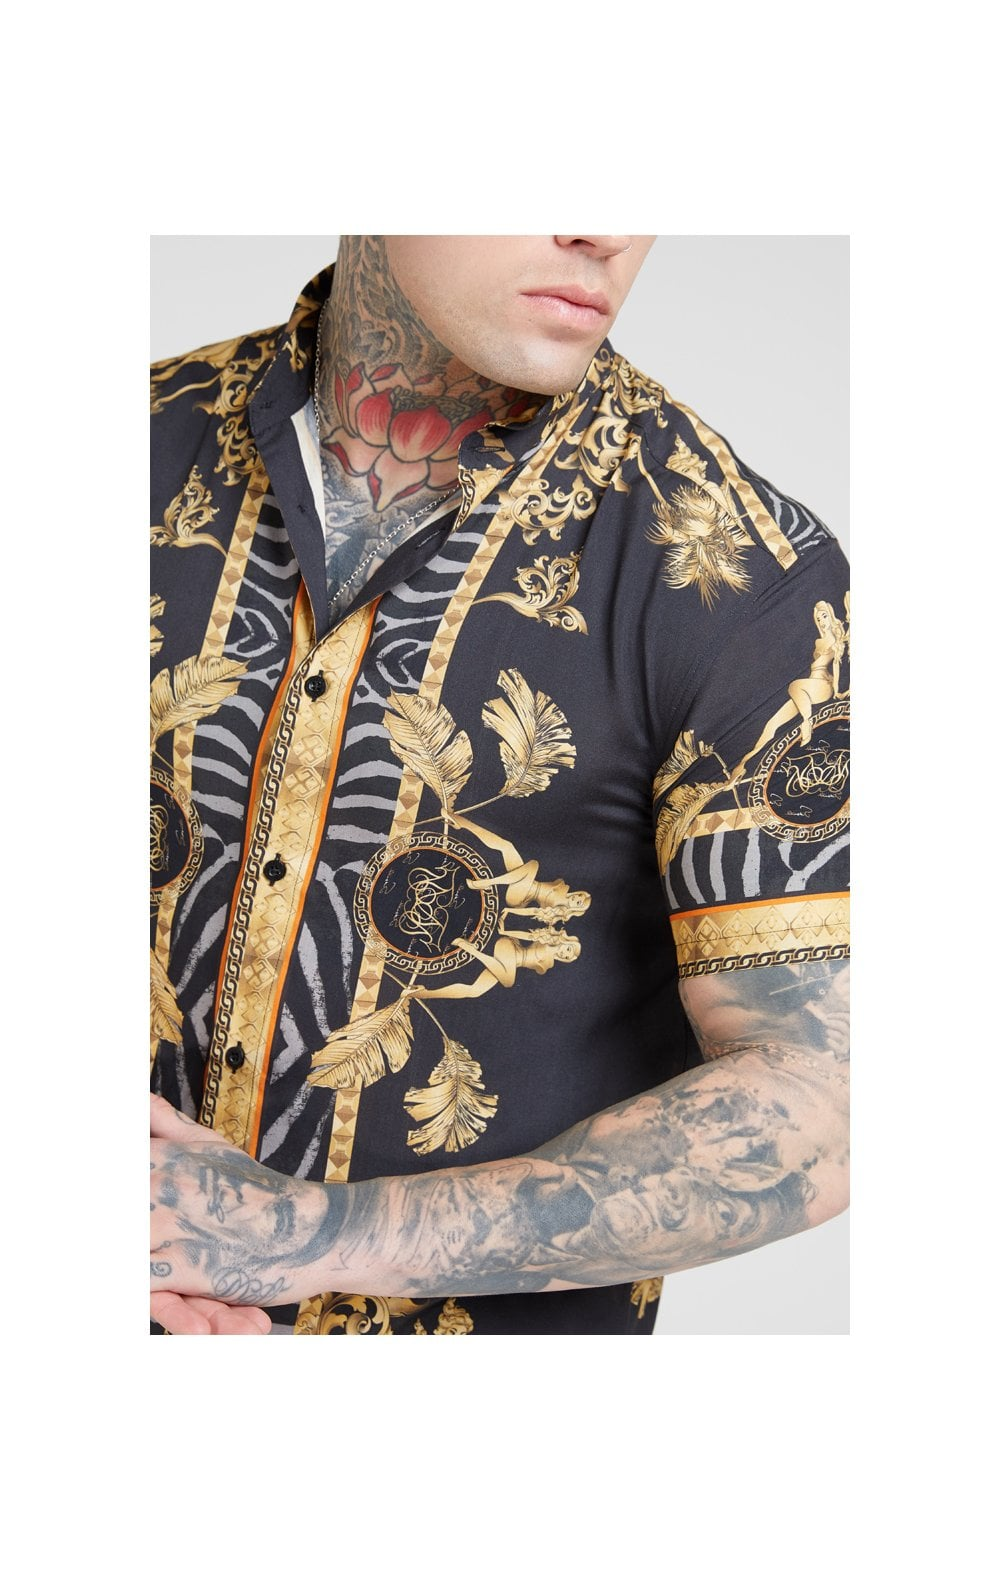 SikSilk High Collar Resort Shirt - Ocean Black MEN SIZES TOP: Small